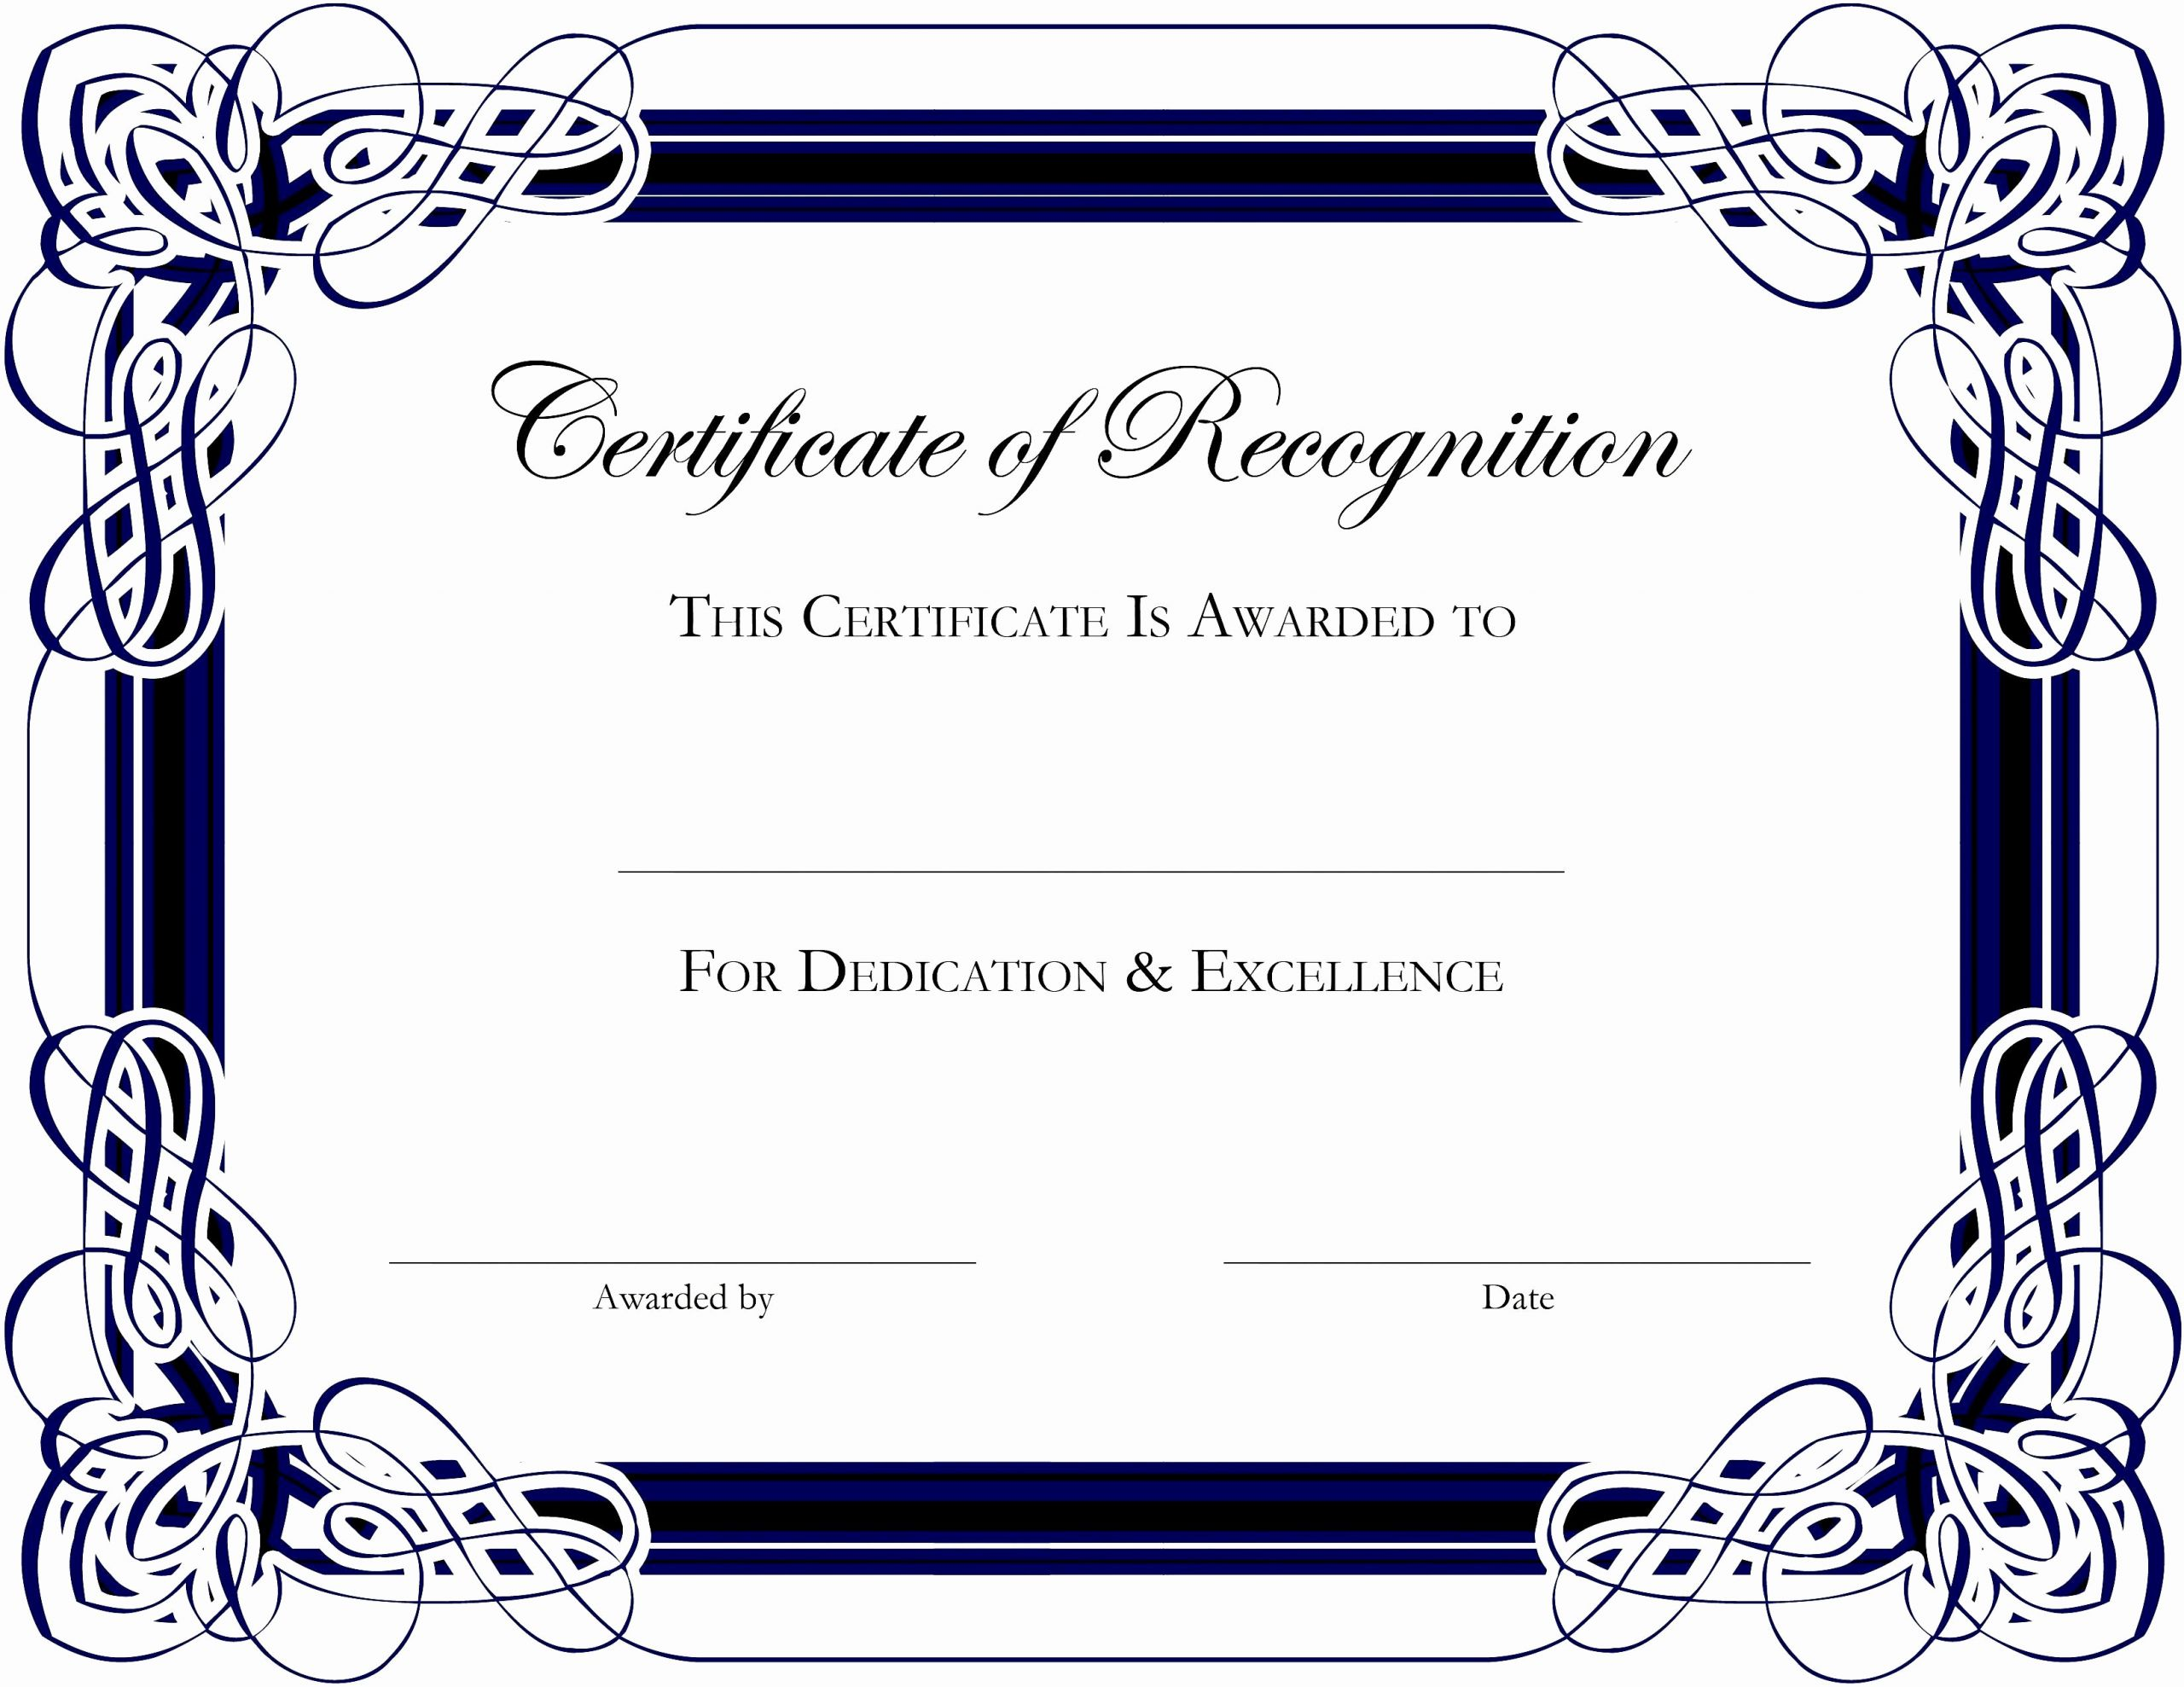 Microsoft Publisher Certificate Template Inspirational Certificate Template Free Publisher